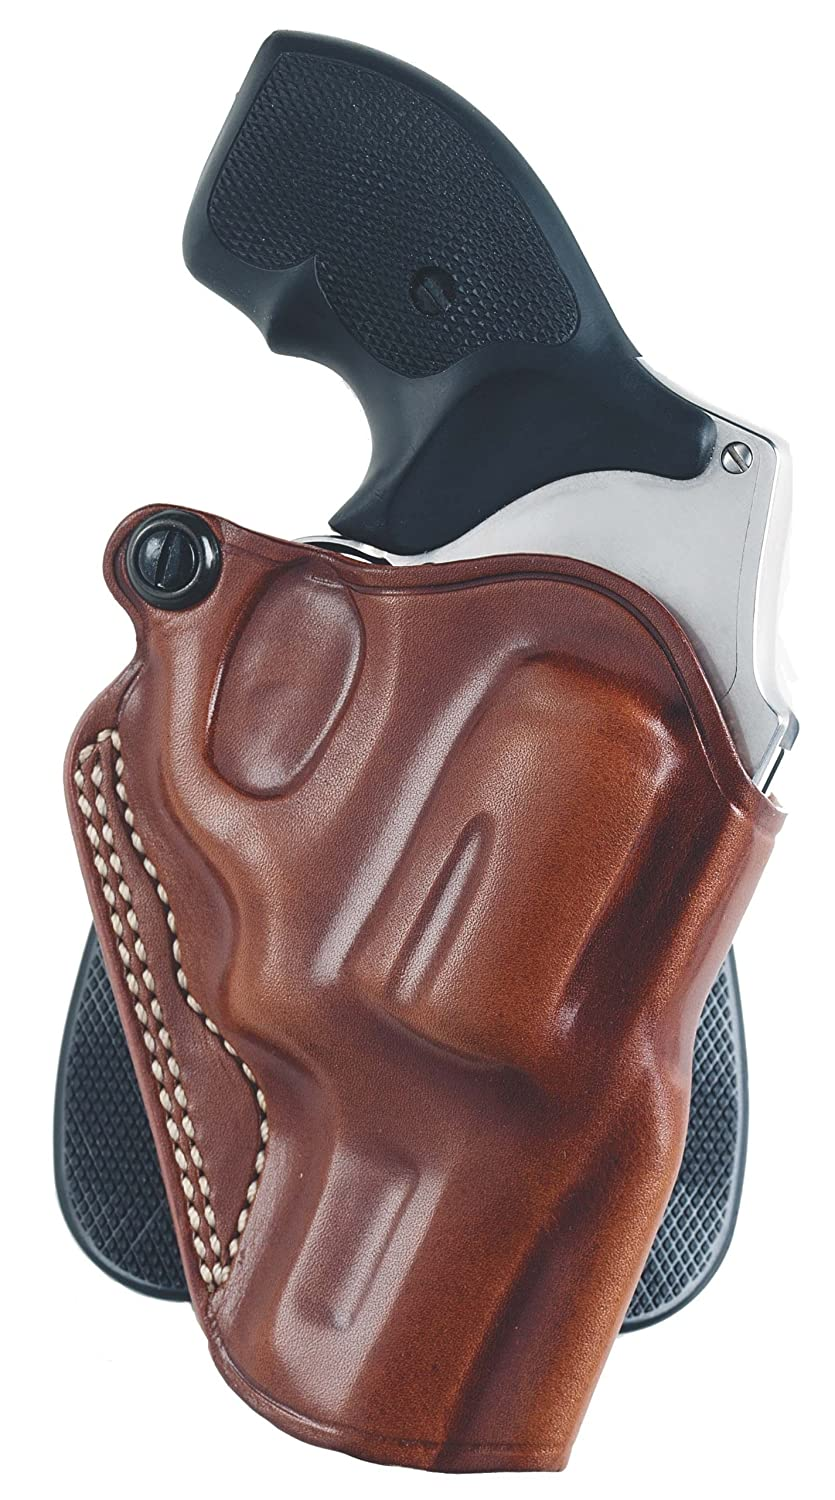 Amazon.com : Galco Speed Paddle Holster for S&W K FR 19 2 1/2-Inch ...